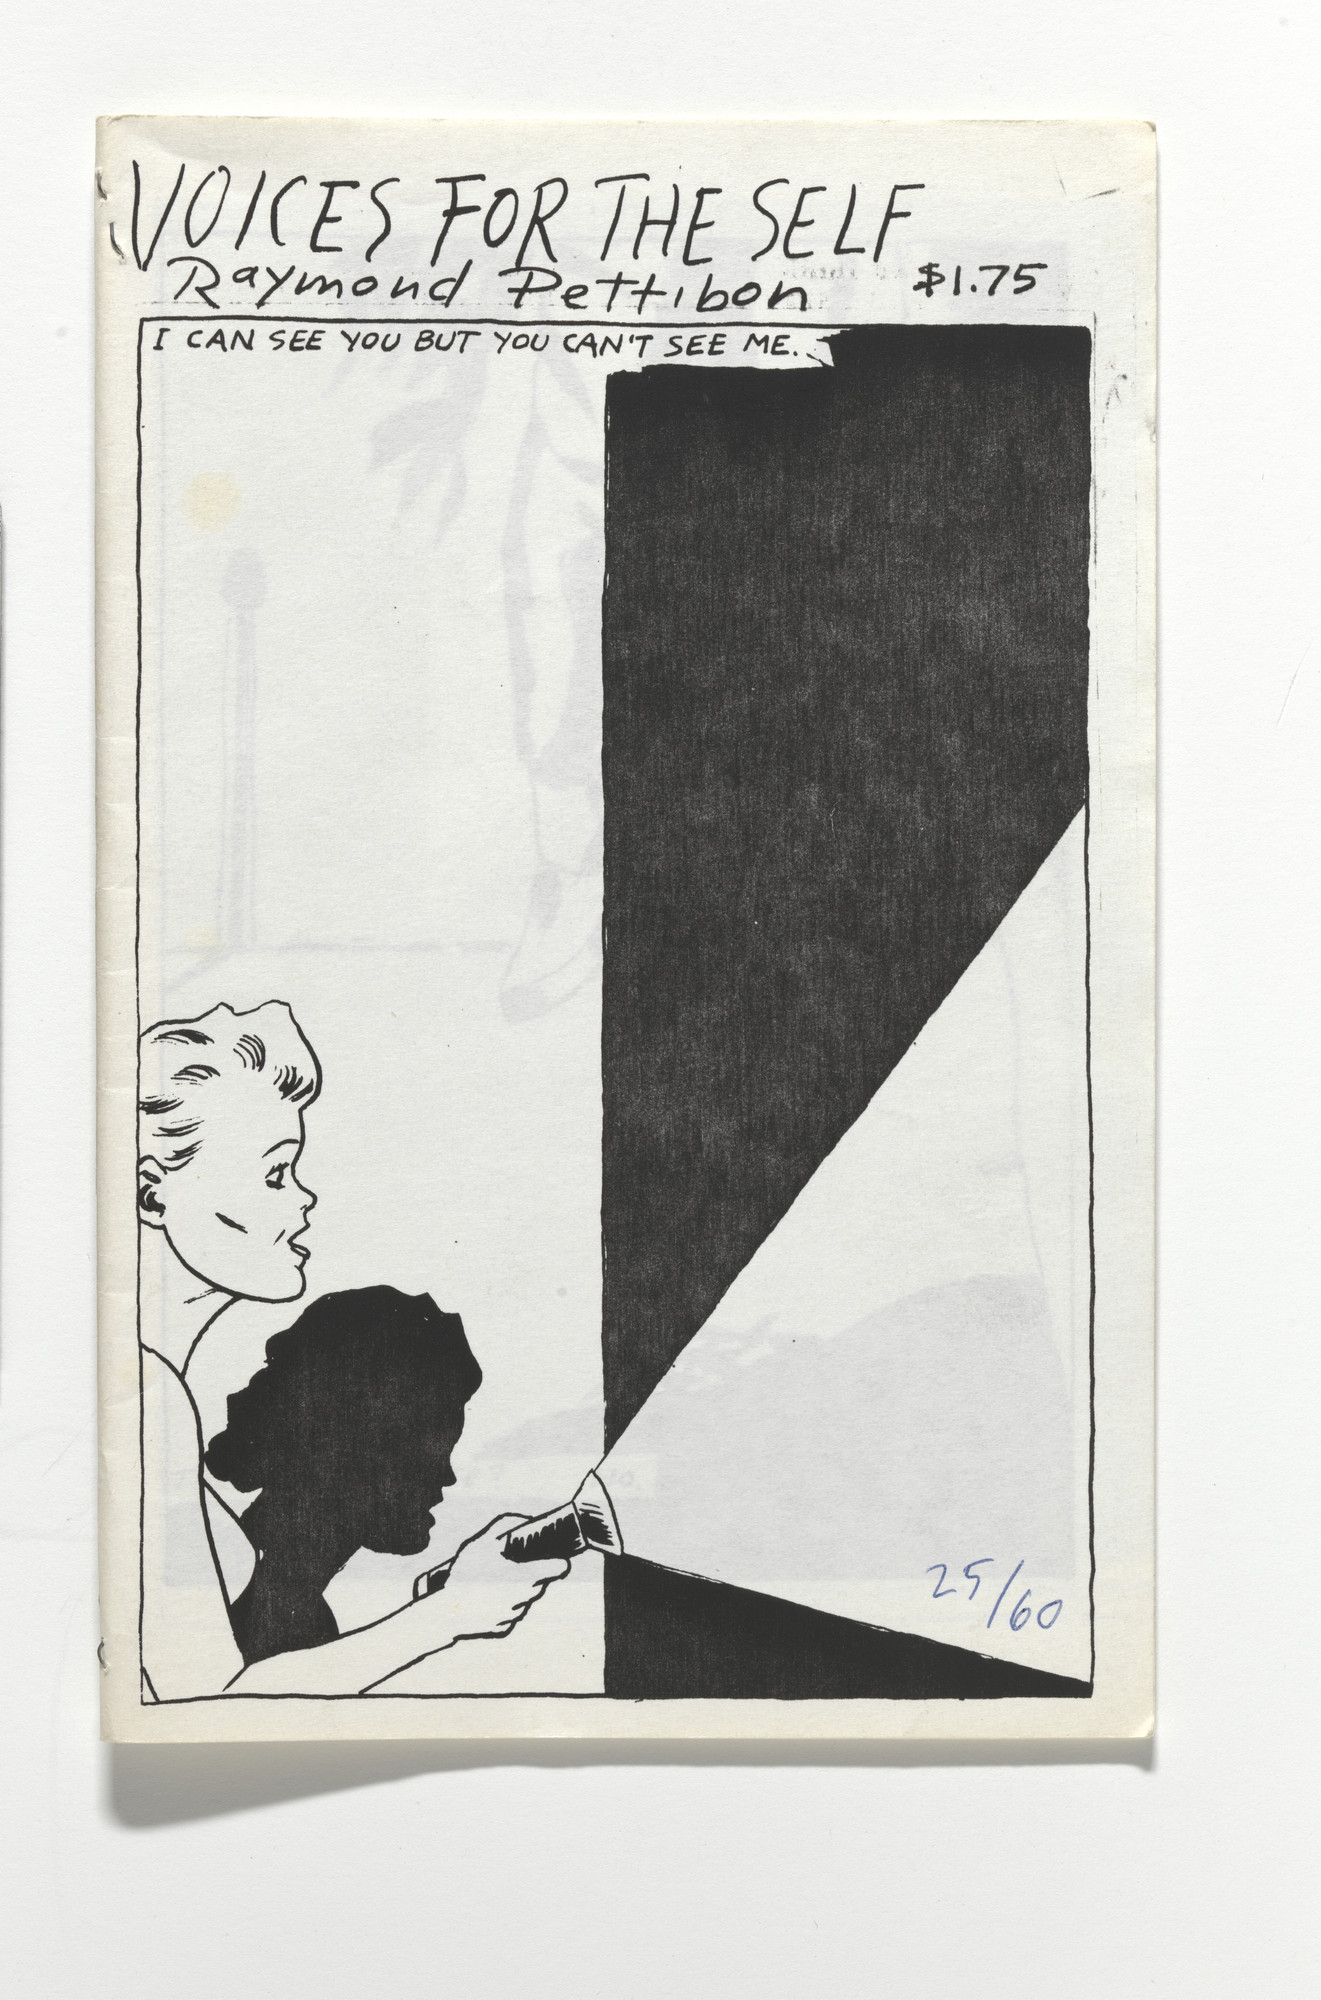 Raymond Pettibon. Voices for the Self. 1988